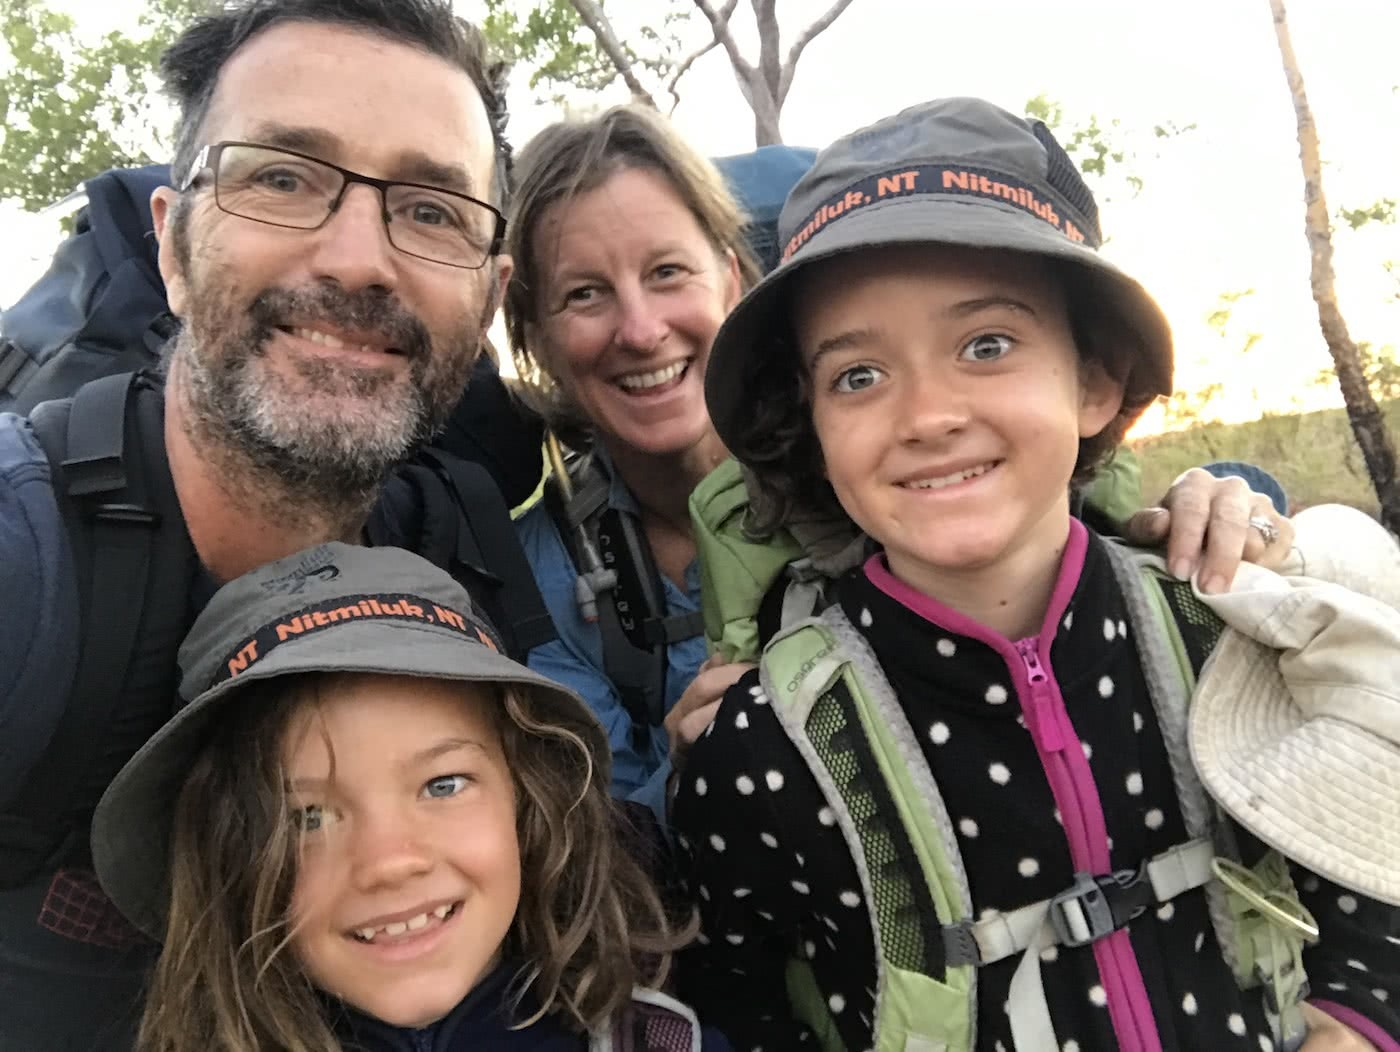 Training Kids Up For Multi-Day Hikes, Helen Cooper, family, mum, dad, smiles, selfie, faces, hikers